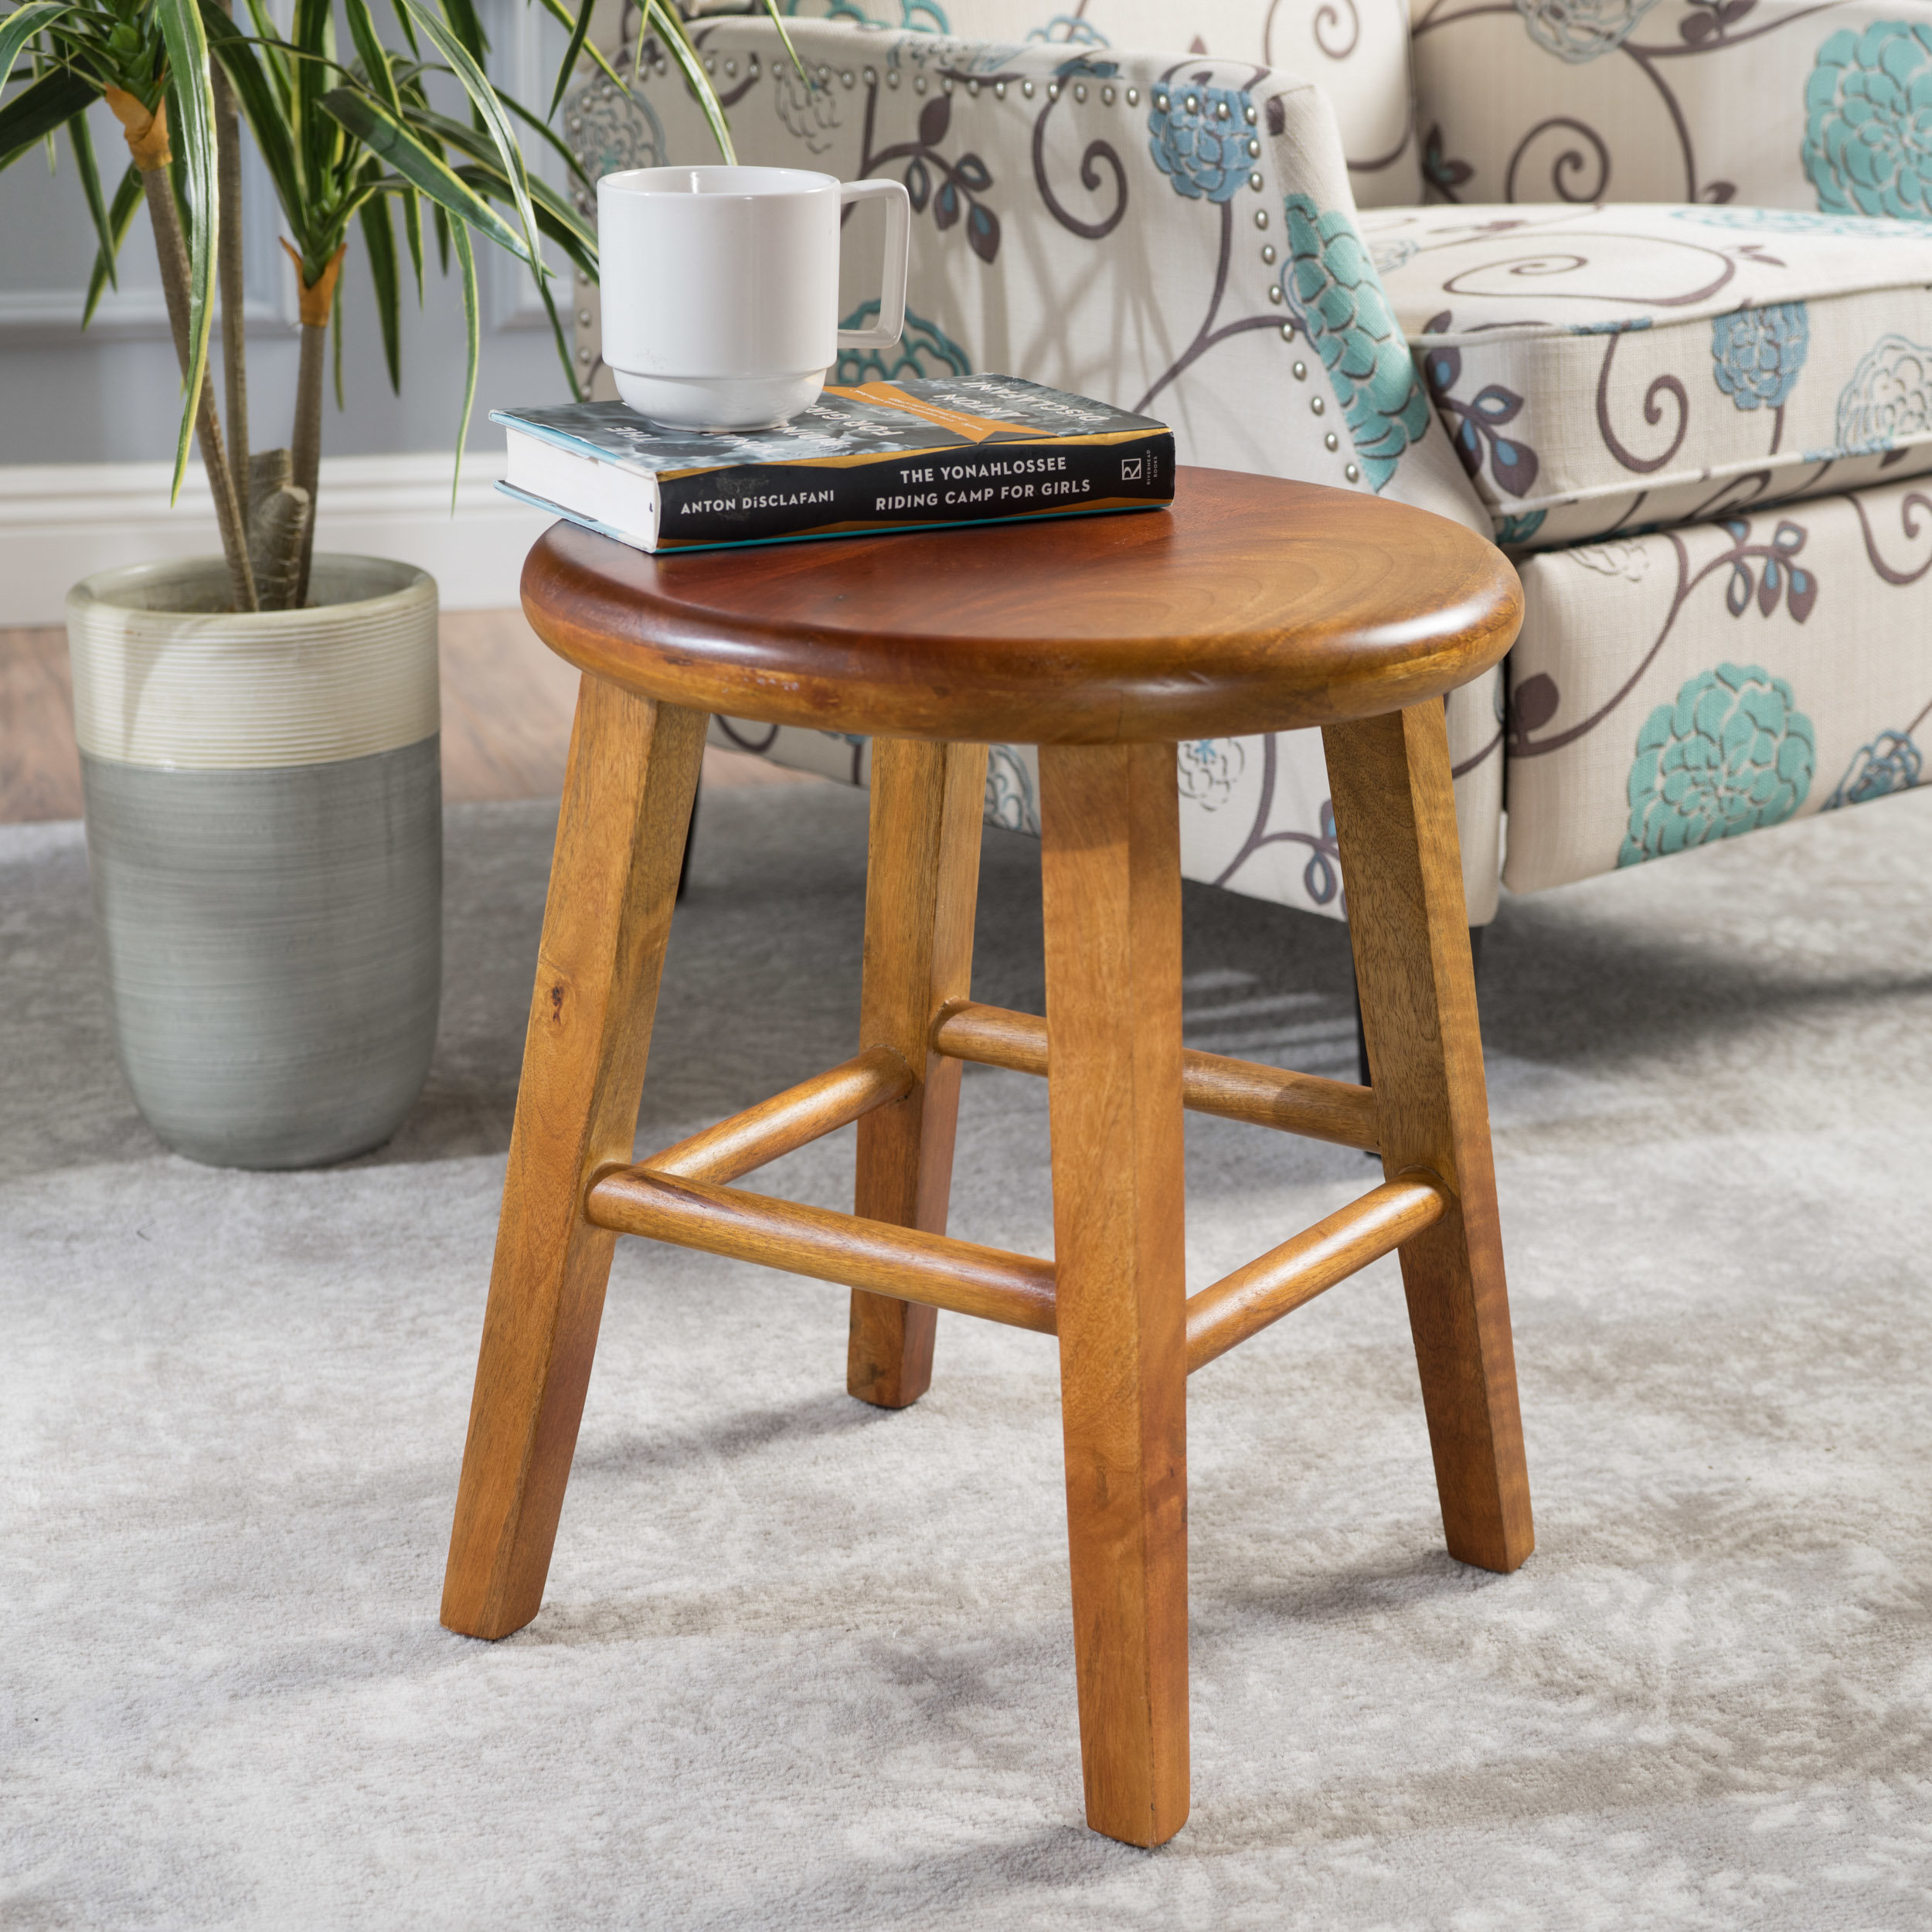 solid wood accent stools birch lane kingfield stool anton table quickview ice container bamboo bedroom furniture gold home decor rustic white side party cloth brass and glass